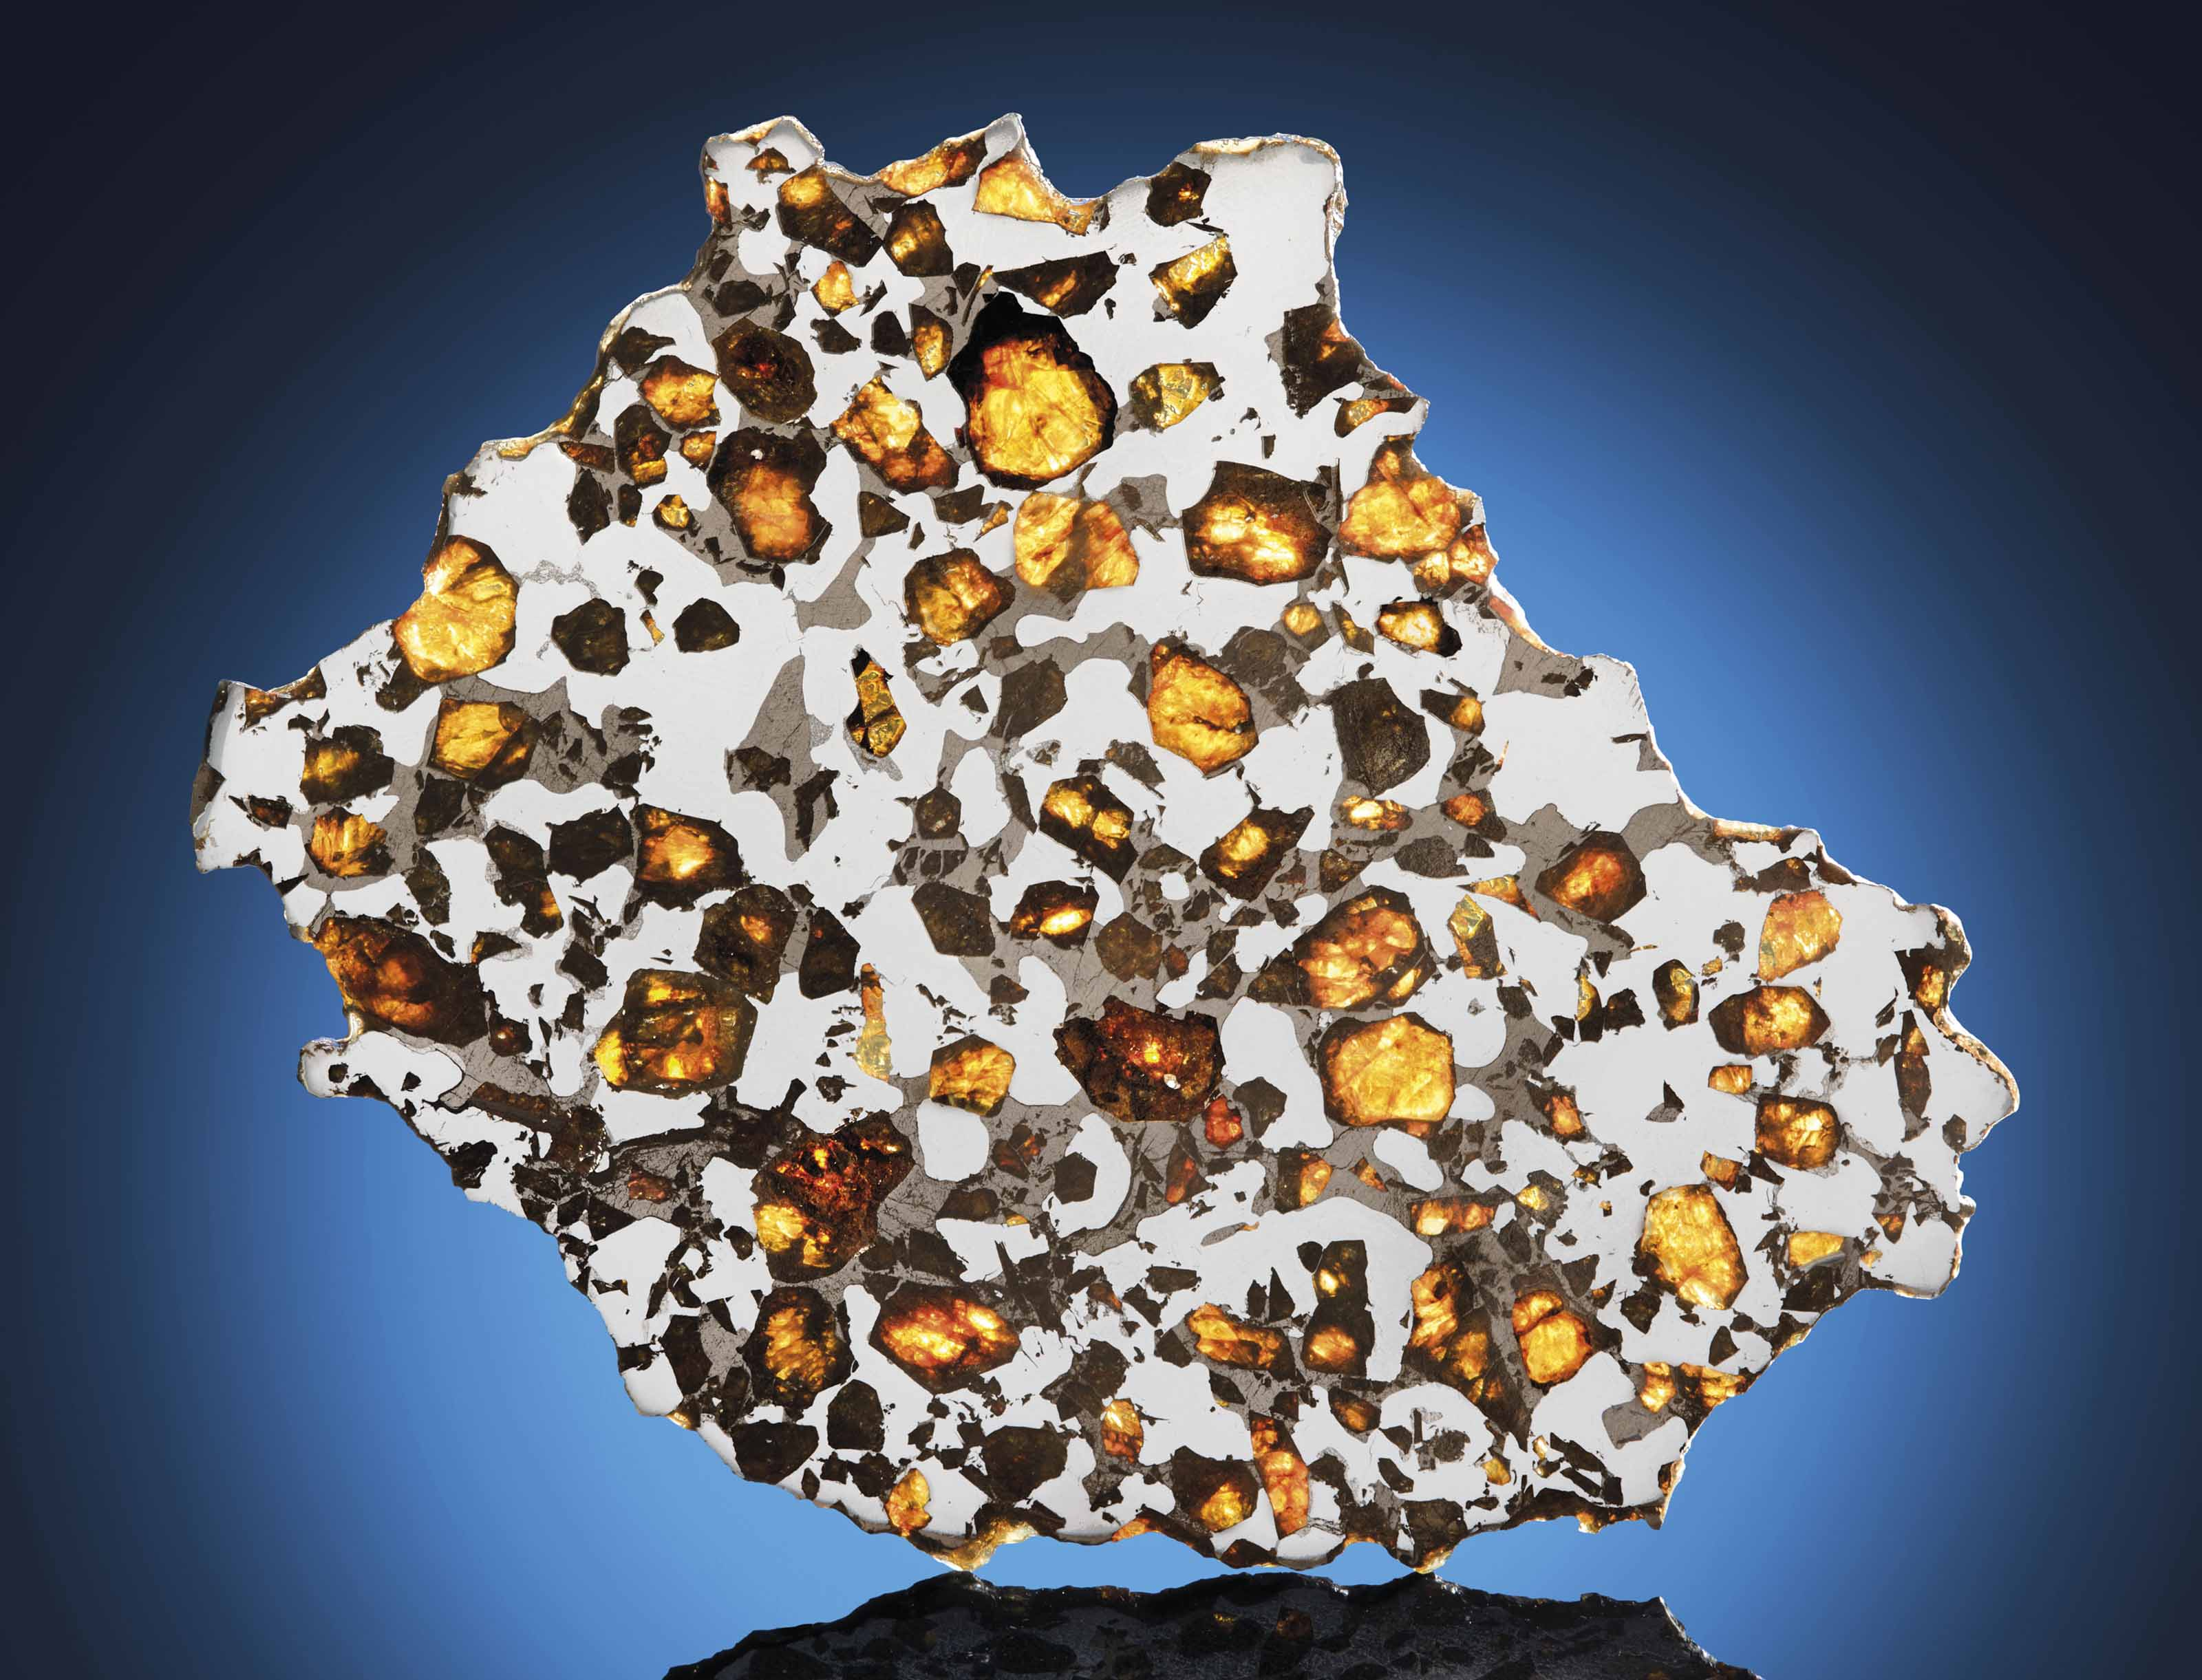 GLORIETA MOUNTAIN PALLASITE —